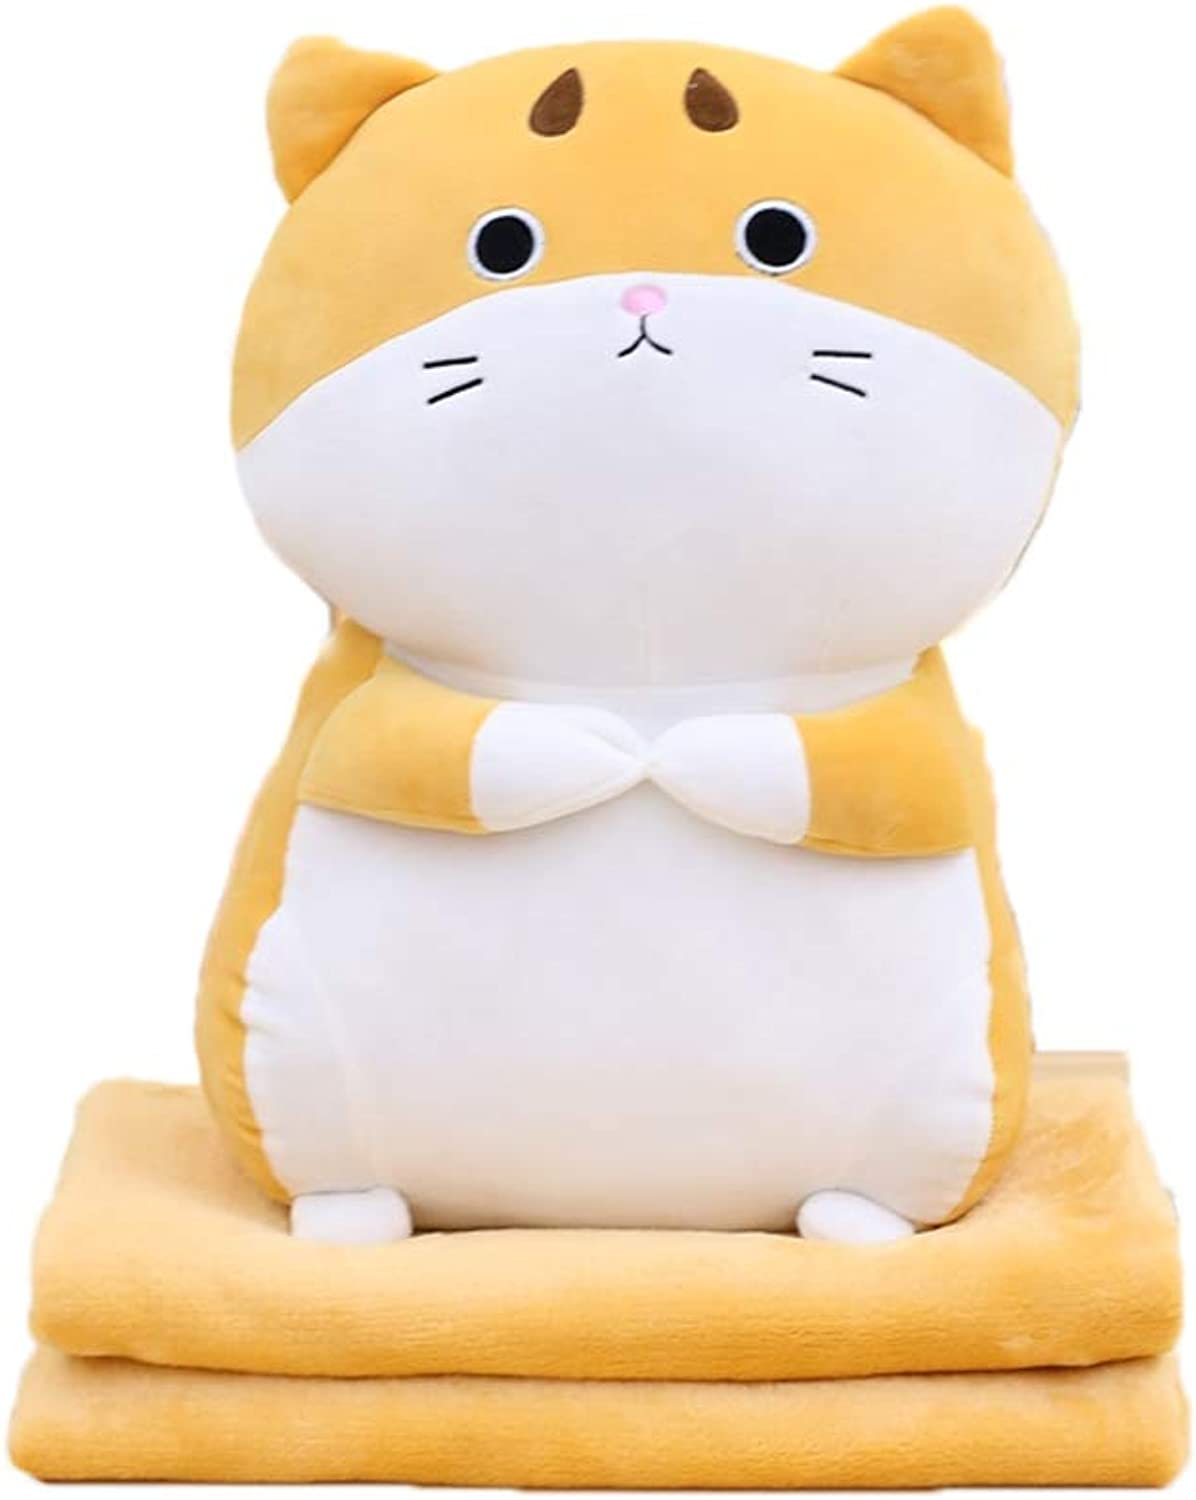 Creative Dual Purpose Pillow Flannel Blanket Within Cartoon Cat Shape Pillow Sofa Cushion Plush Toy for Kids